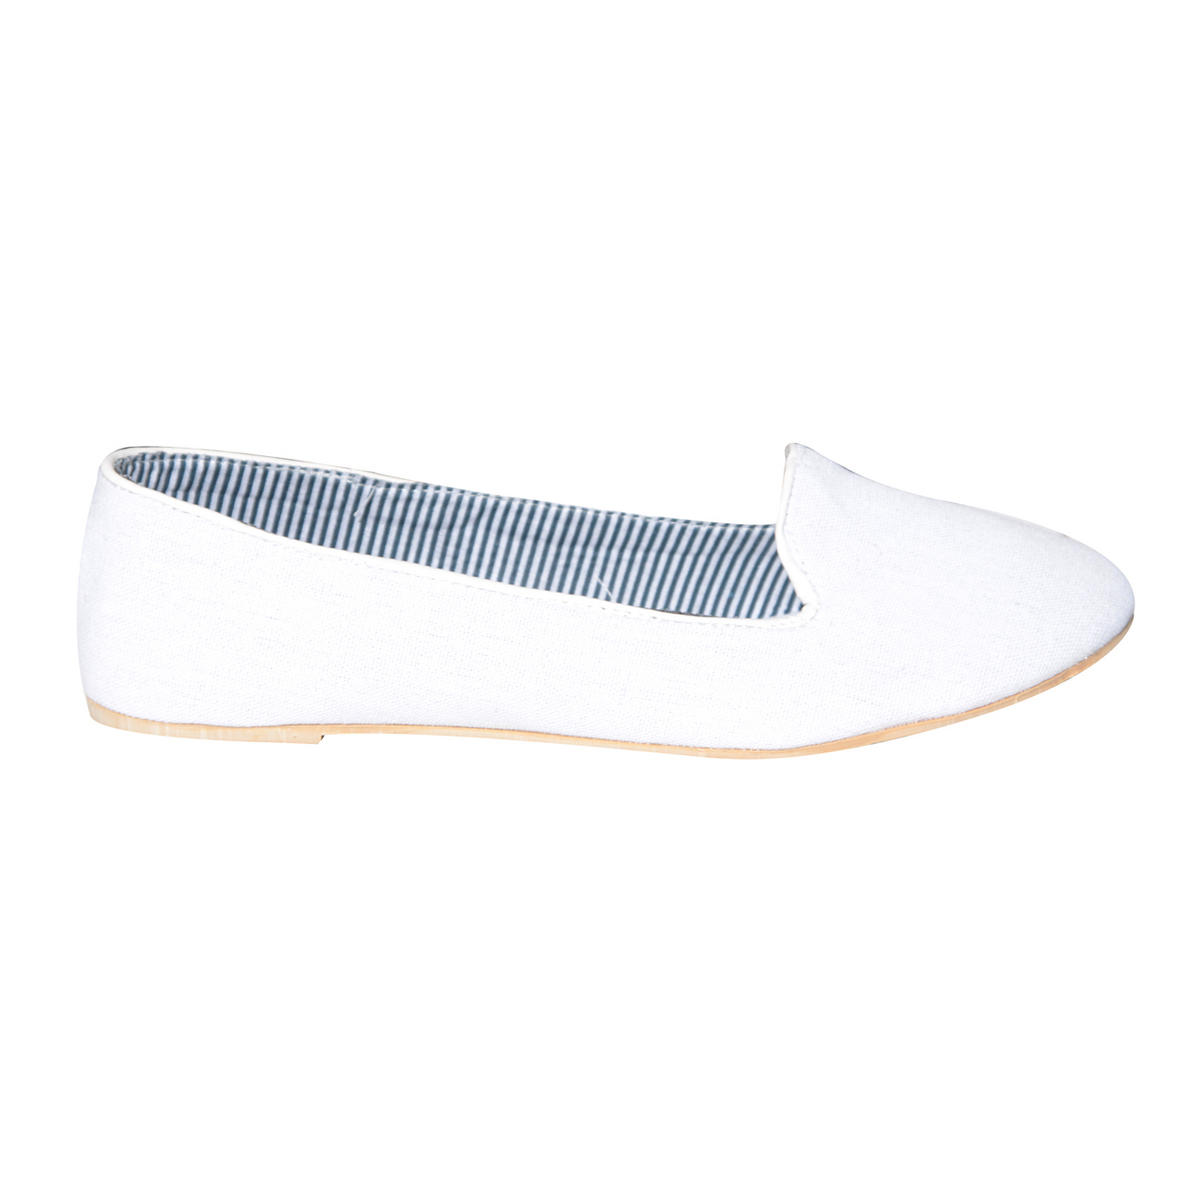 White Flat Slipper Shoe Preview